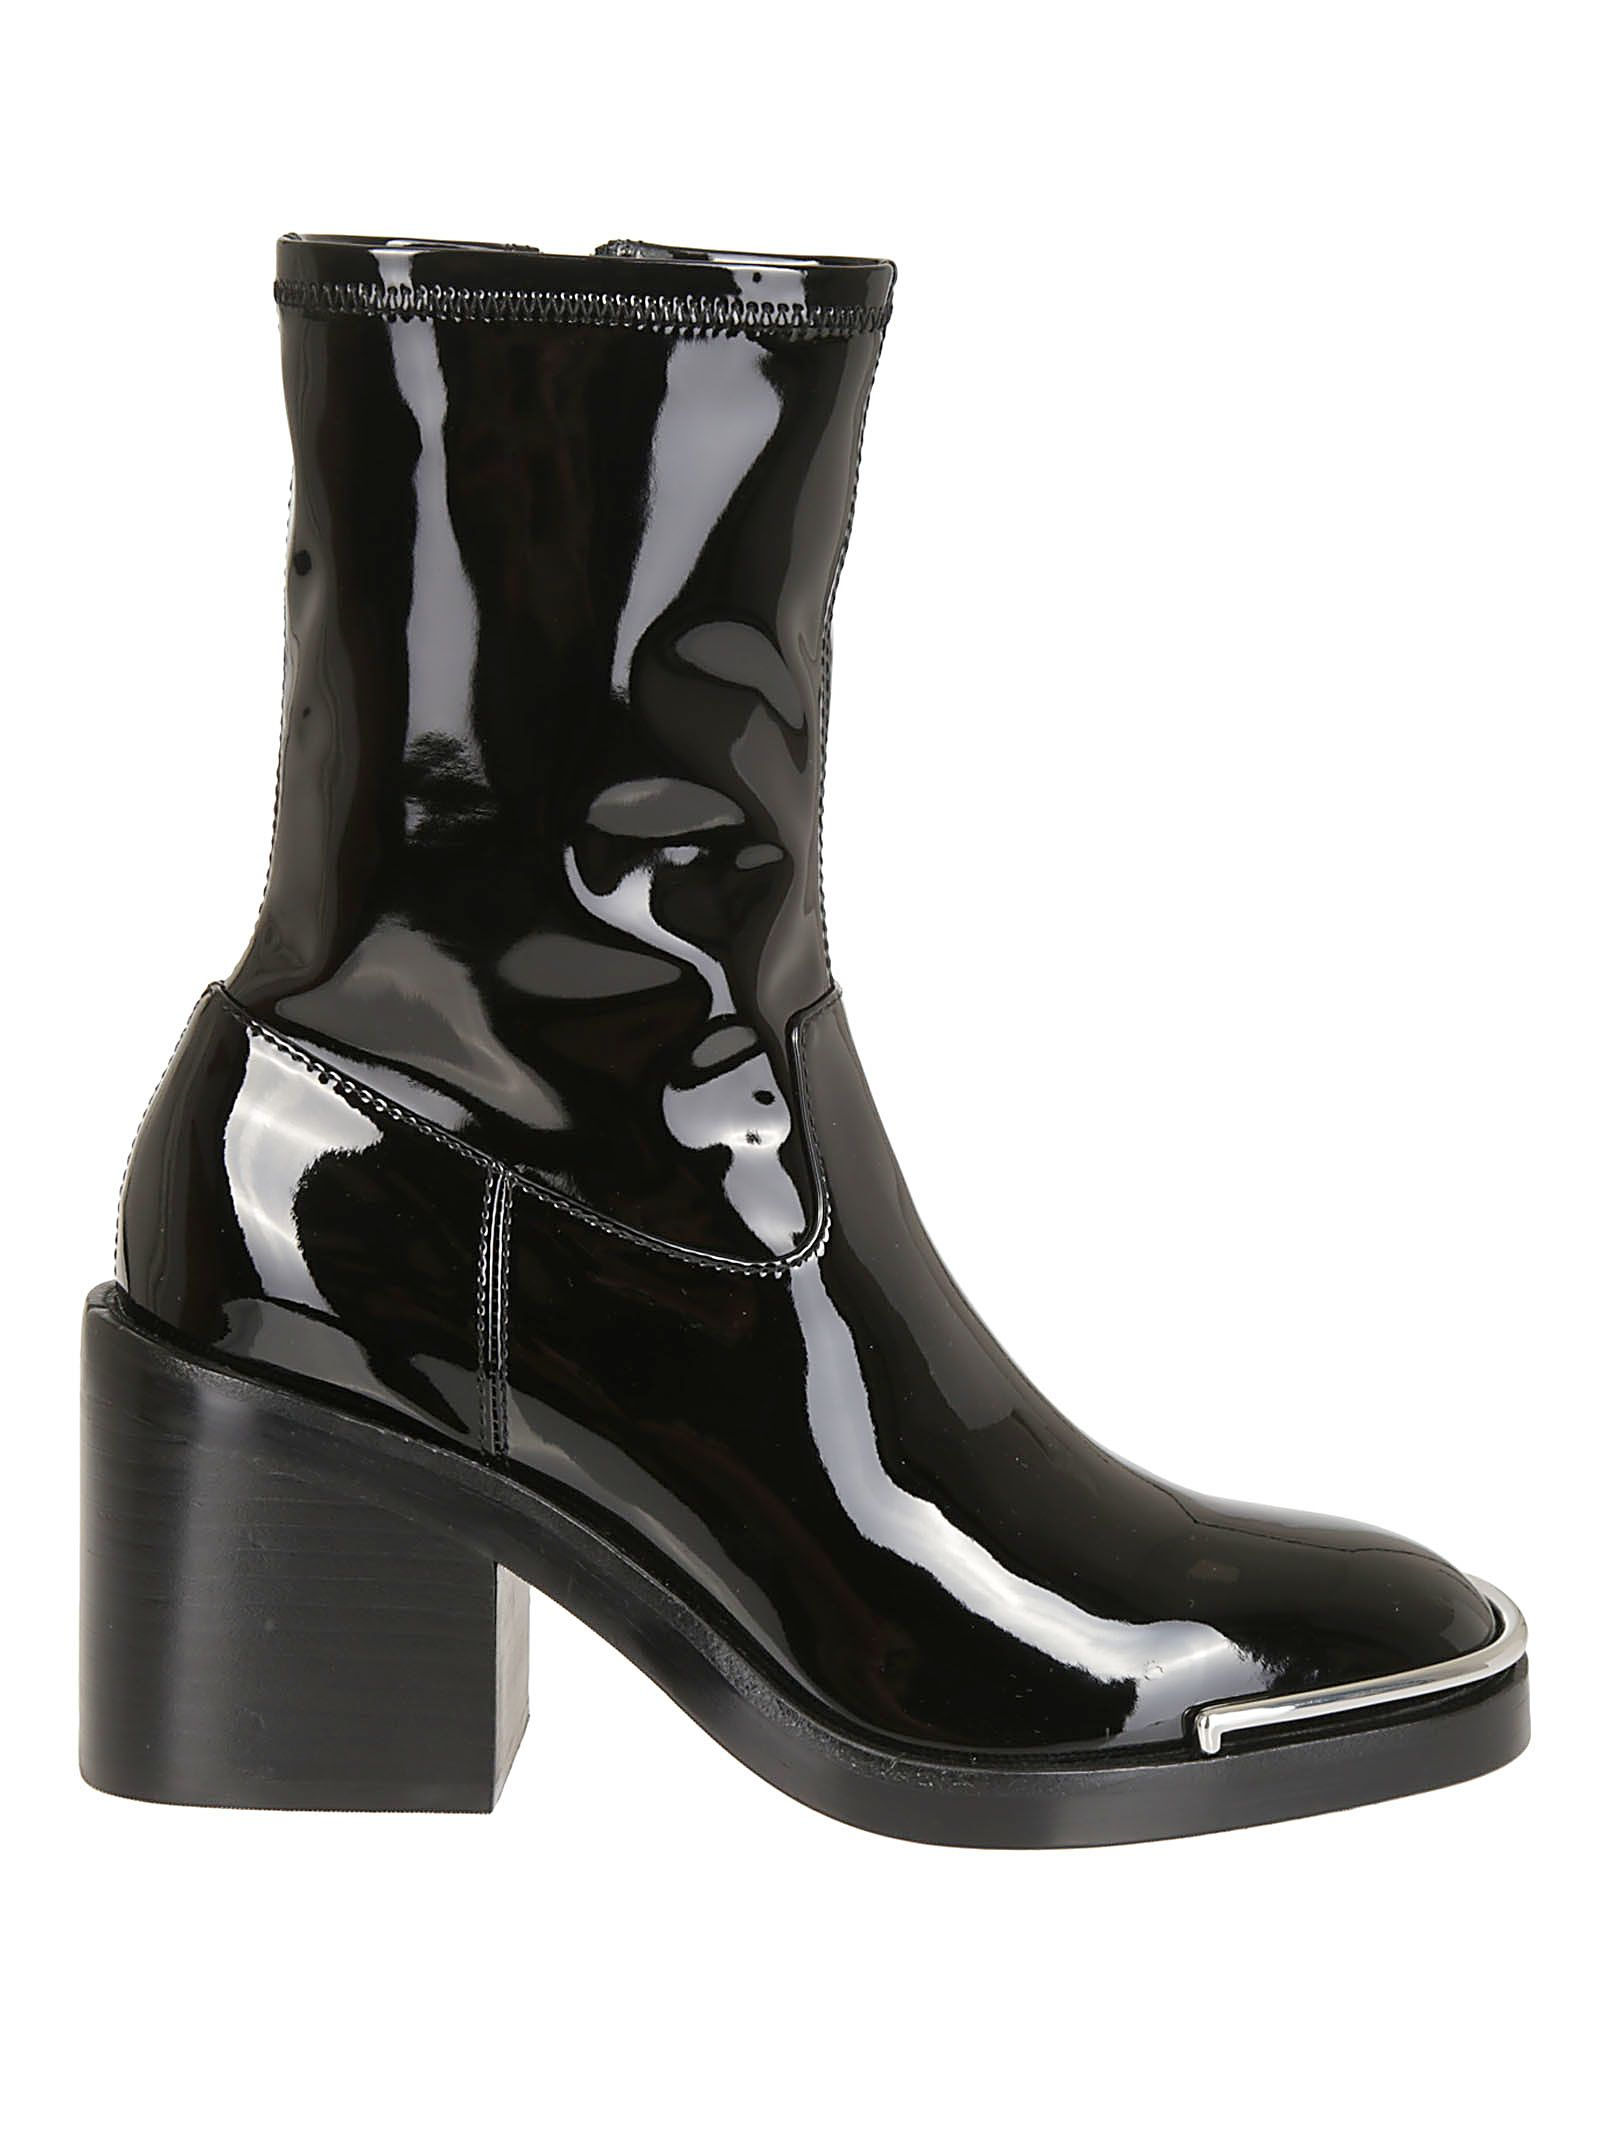 Alexander Wang Side Zipped Ankle Boots